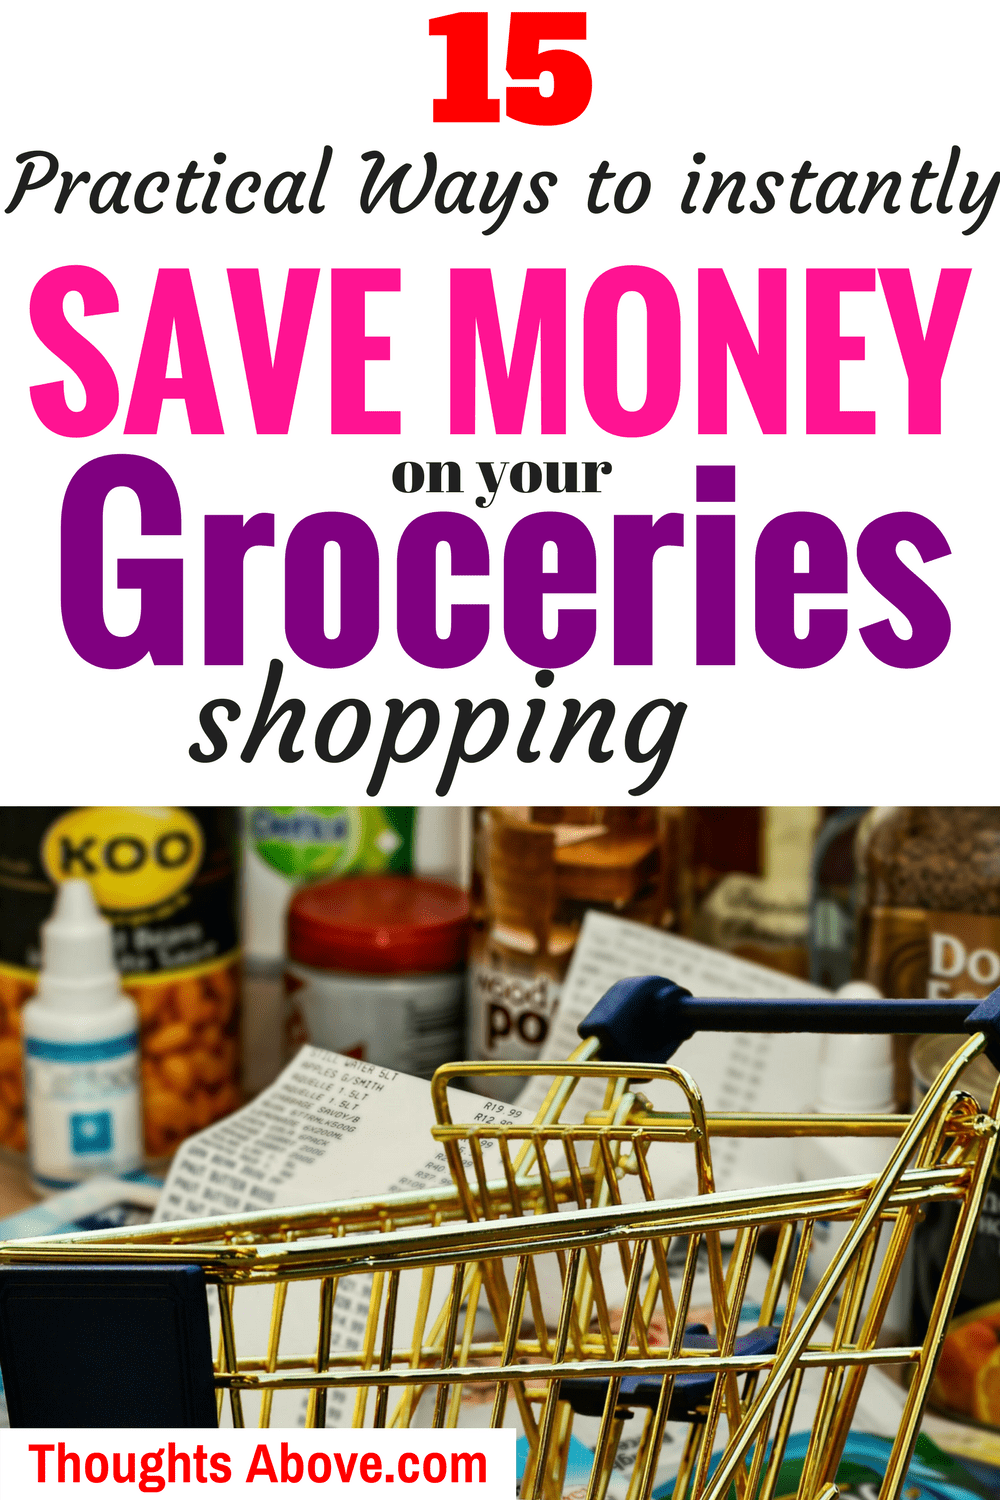 How to save money on groceries budget tips without coupons. Save money tips, Frugal living/ budget/ Meal planning to save money on food #savemoneyongroceries #moneysavingtips #frugalliving #grocerysavings #money